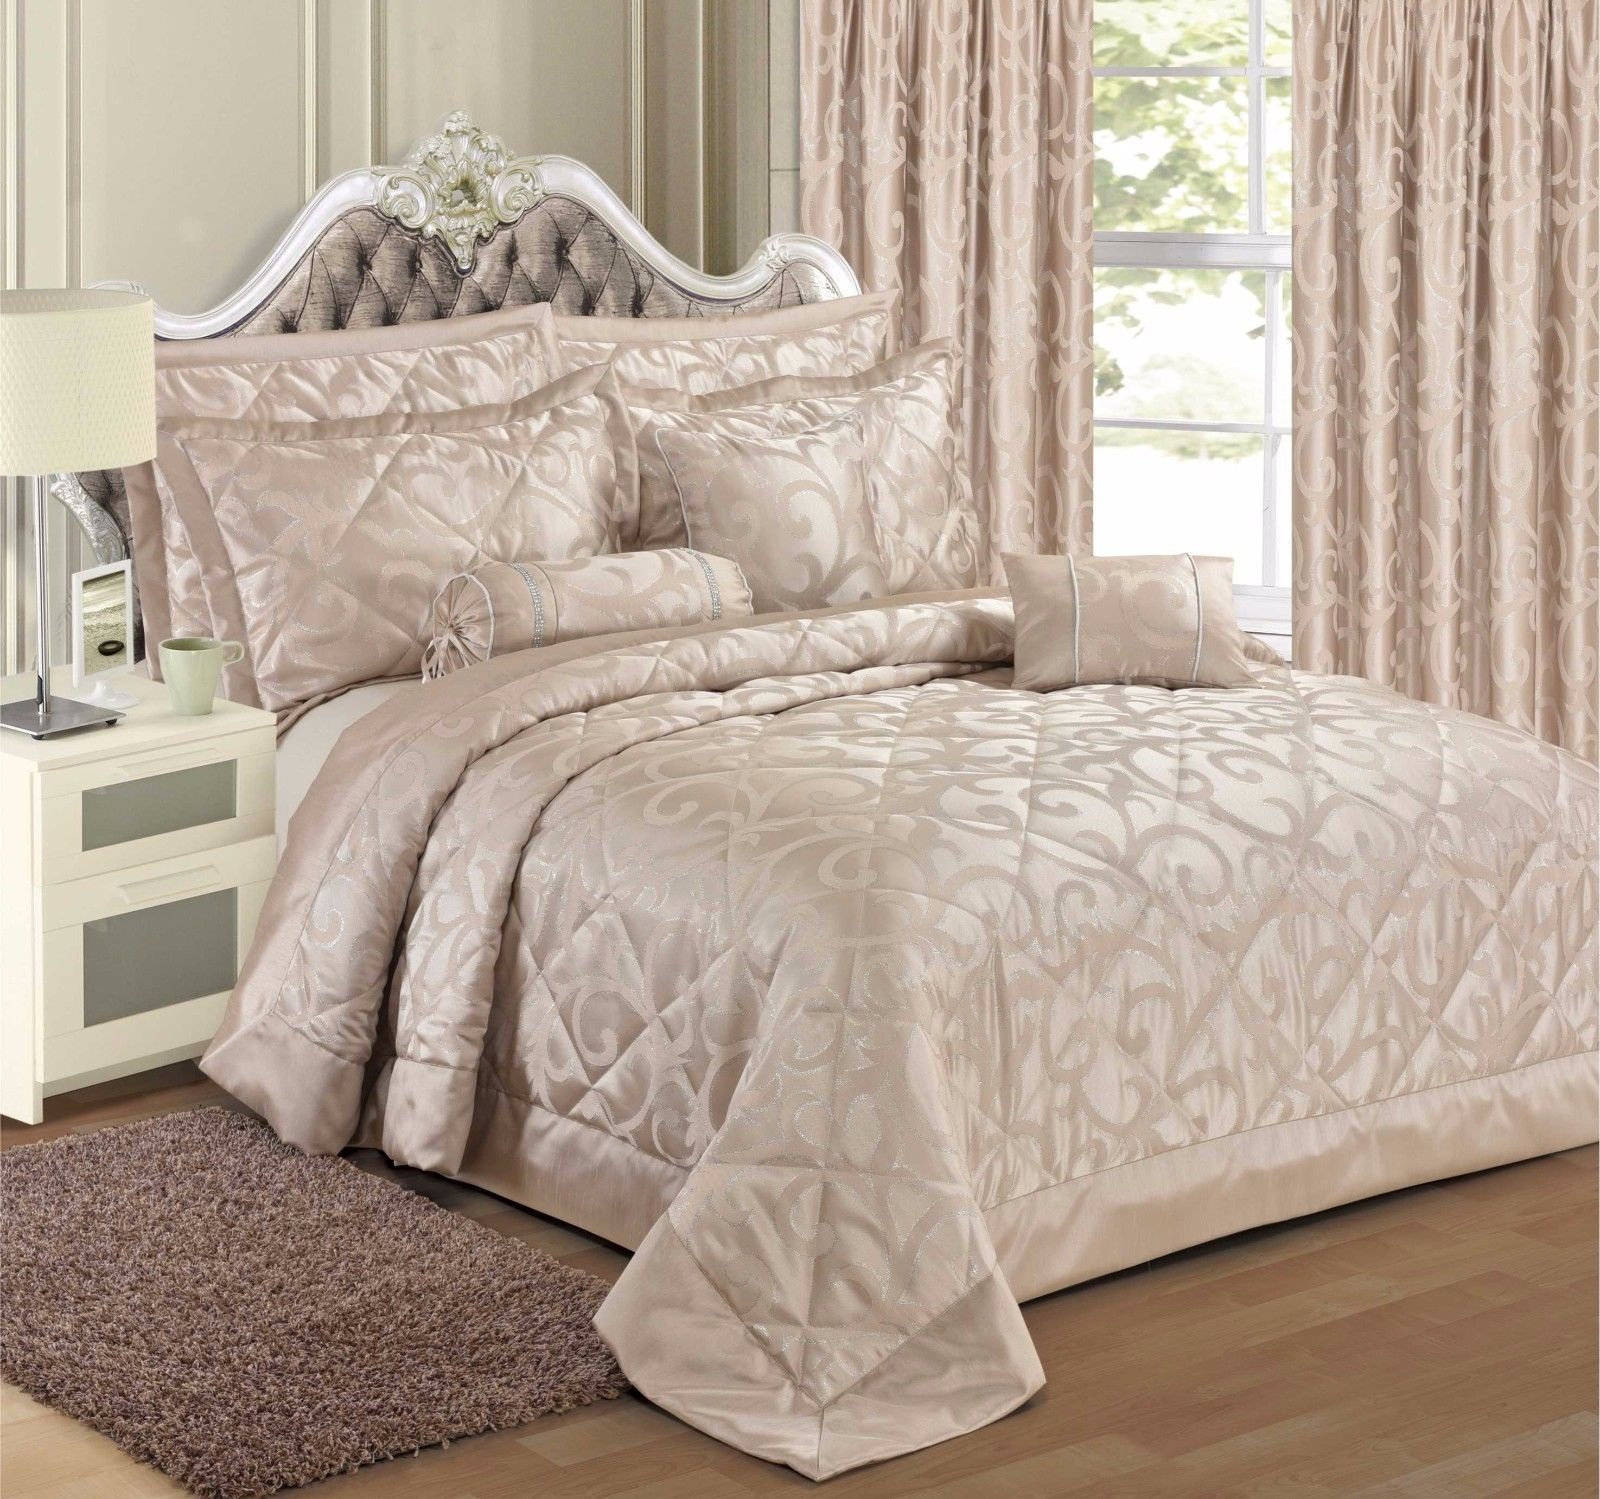 Champagne Colour Stylish Floral Scroll Jacquard Luxury